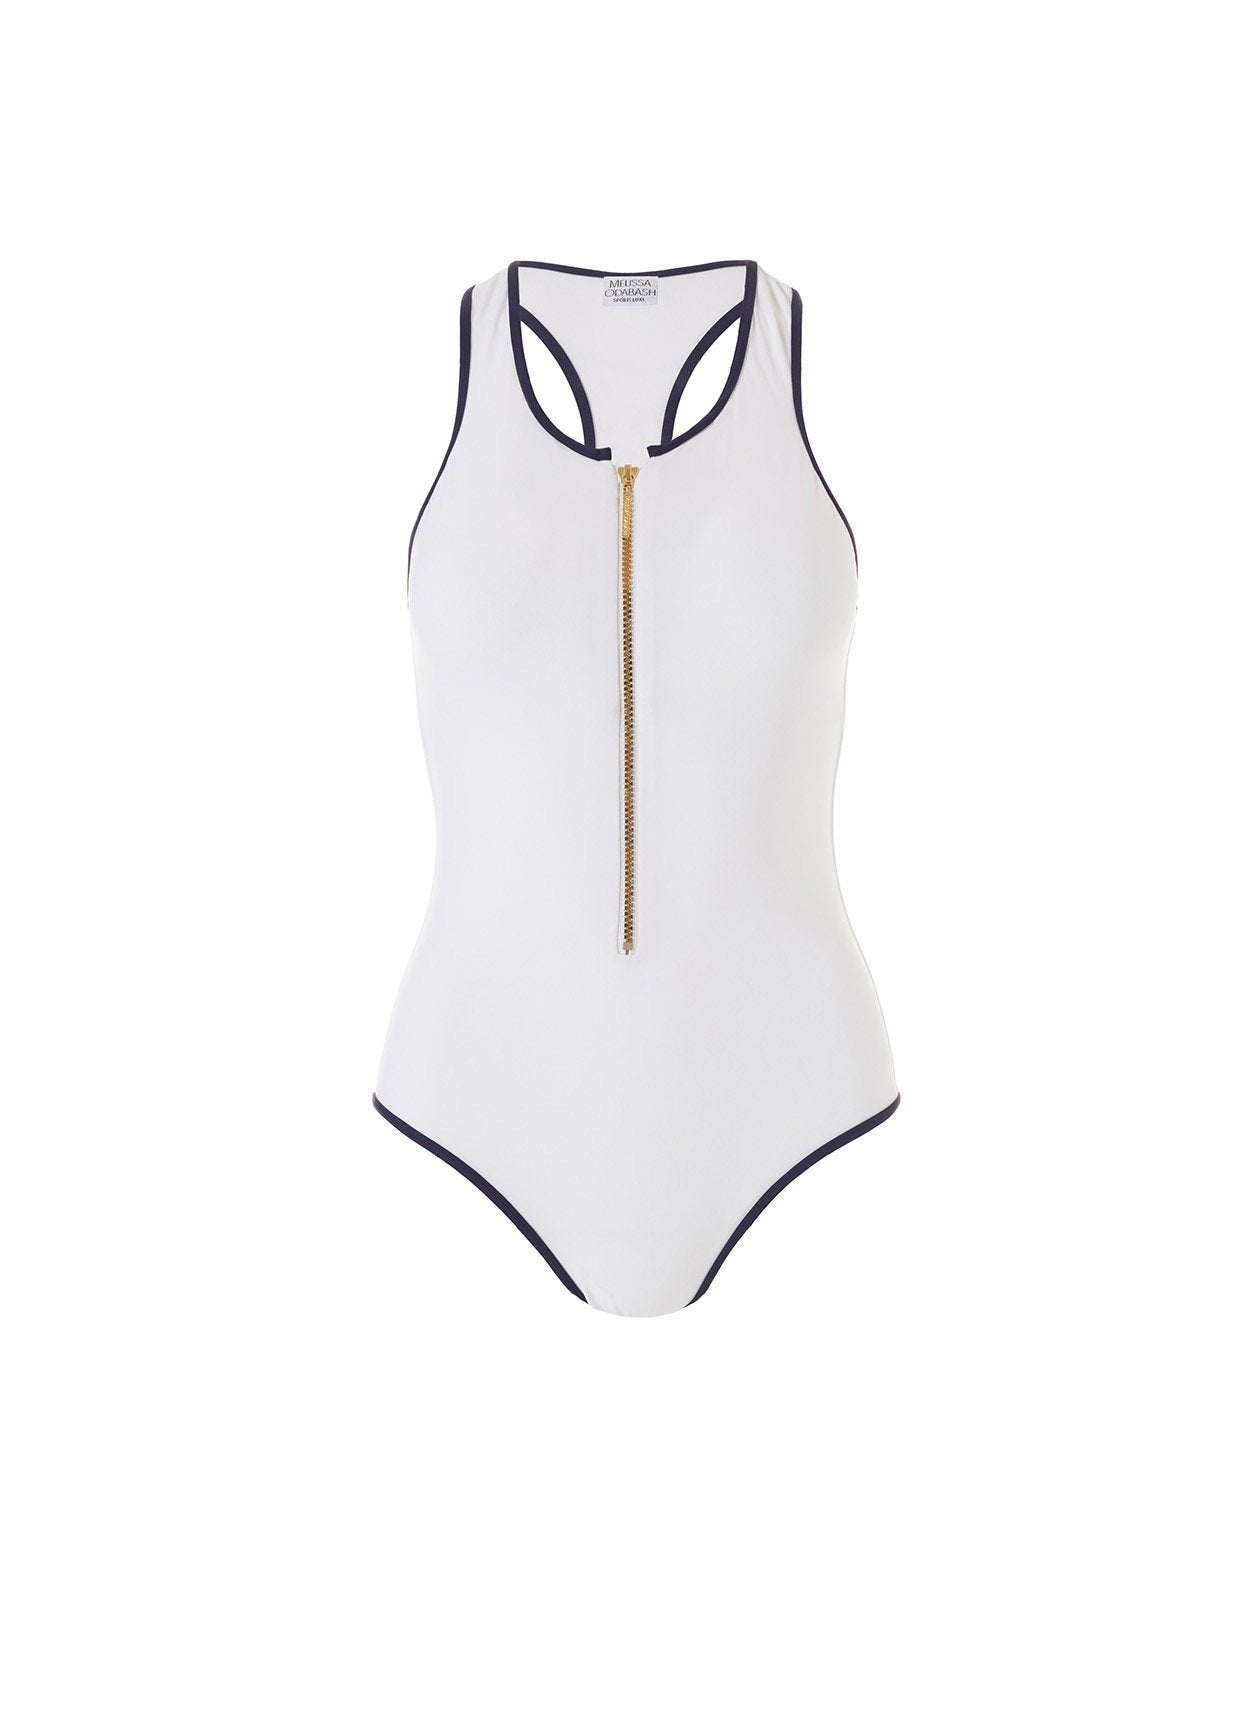 Torino White Sports Zip Front One Piece 2020